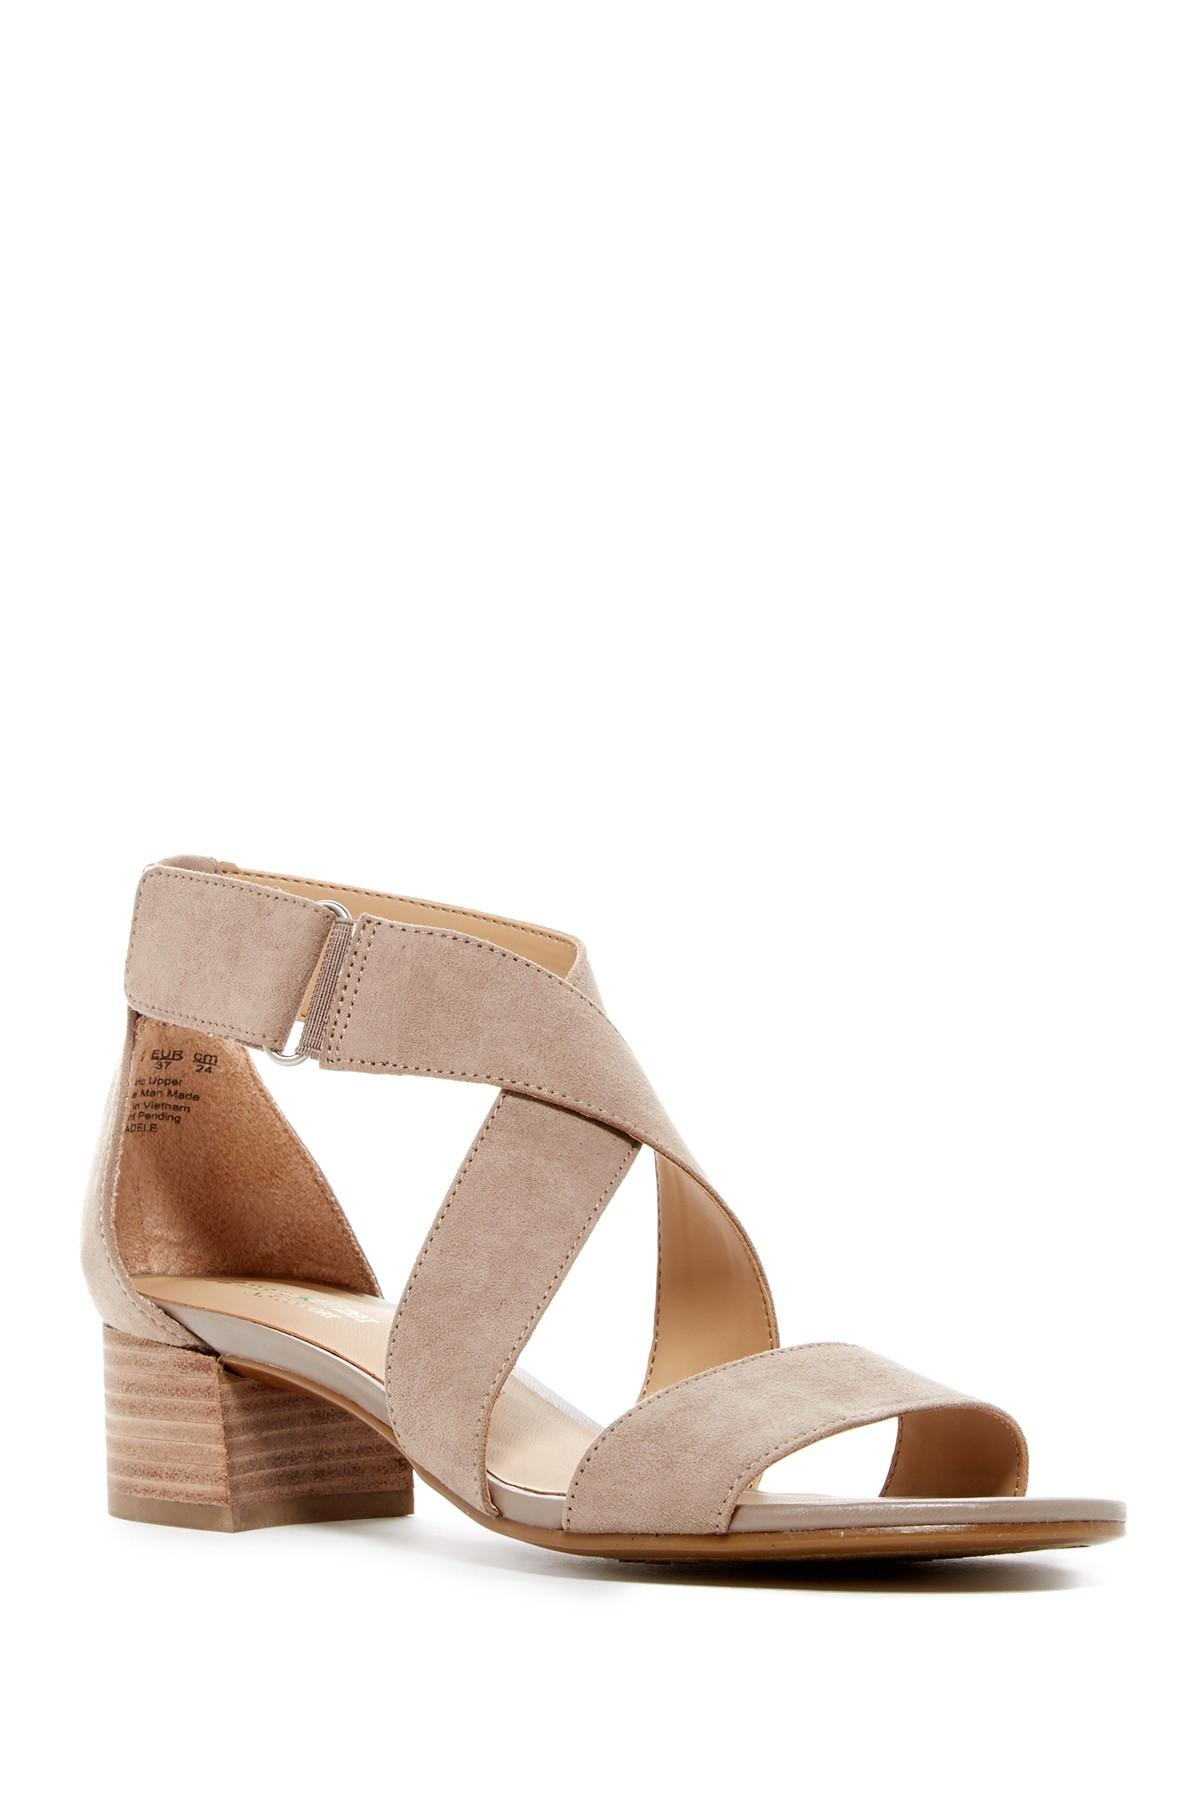 Naturalizer Adele Block Heel Sandal Wide Width Available